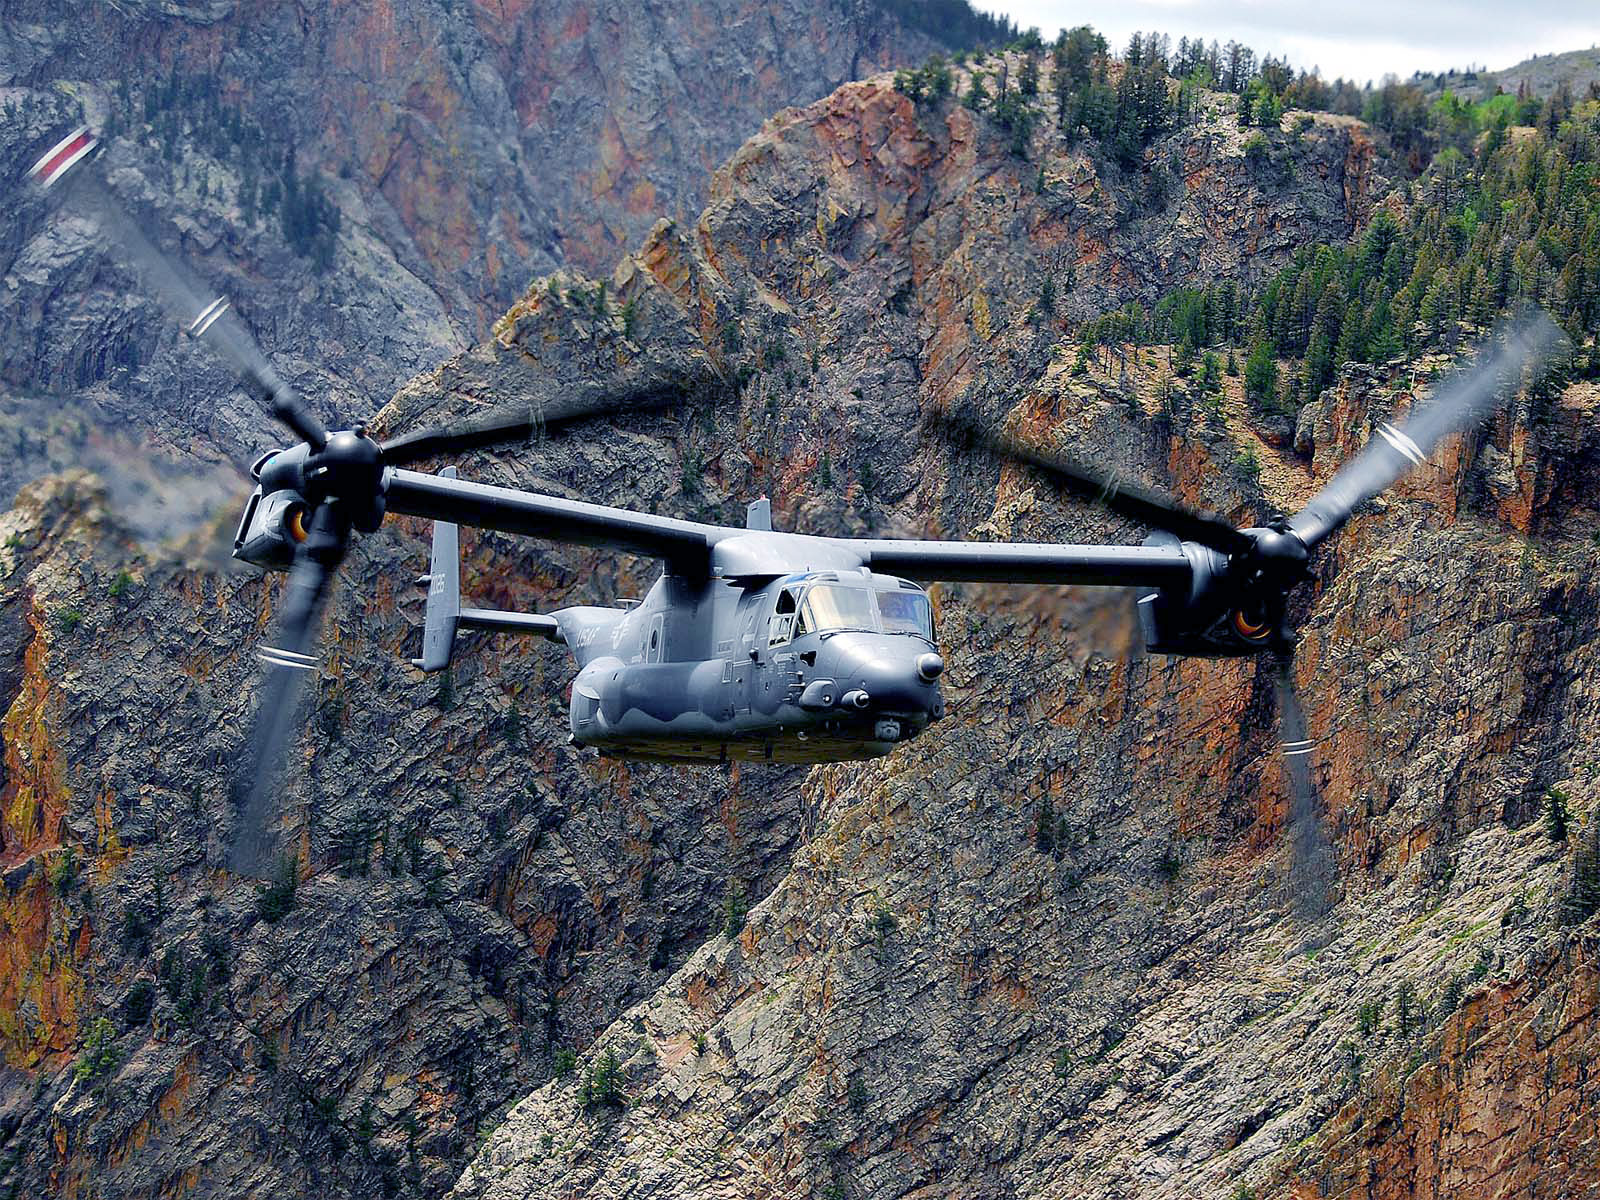 US Army Helicopter computer desktop wallpapers pictures images 1600x1200